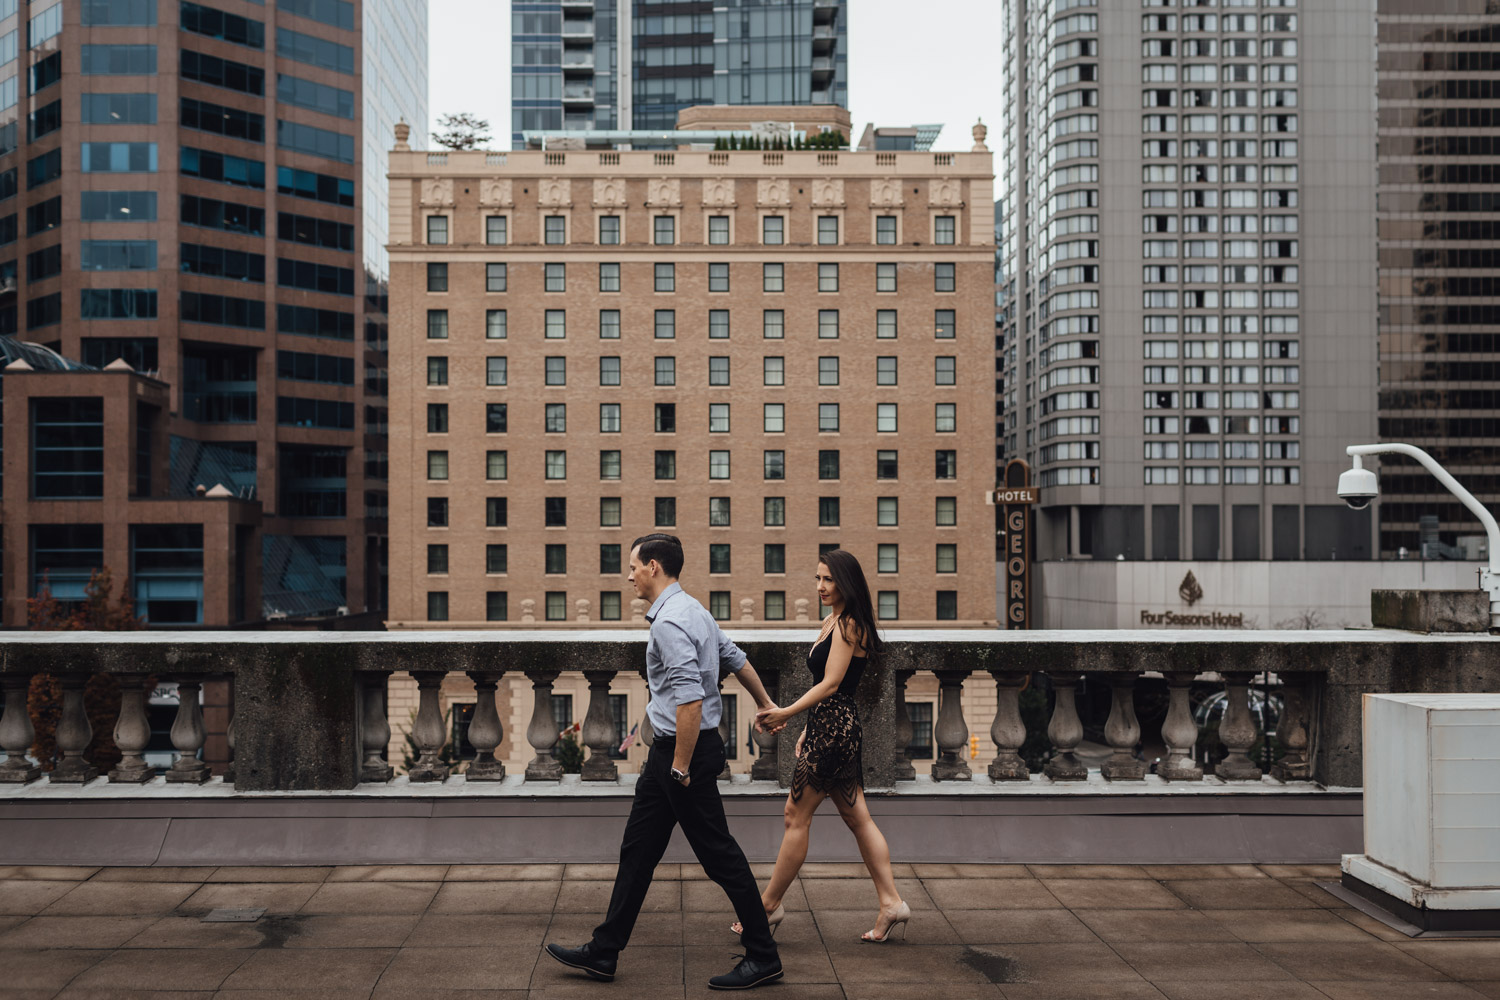 vancouver art gallery rooftop engagement photography downtown vsco